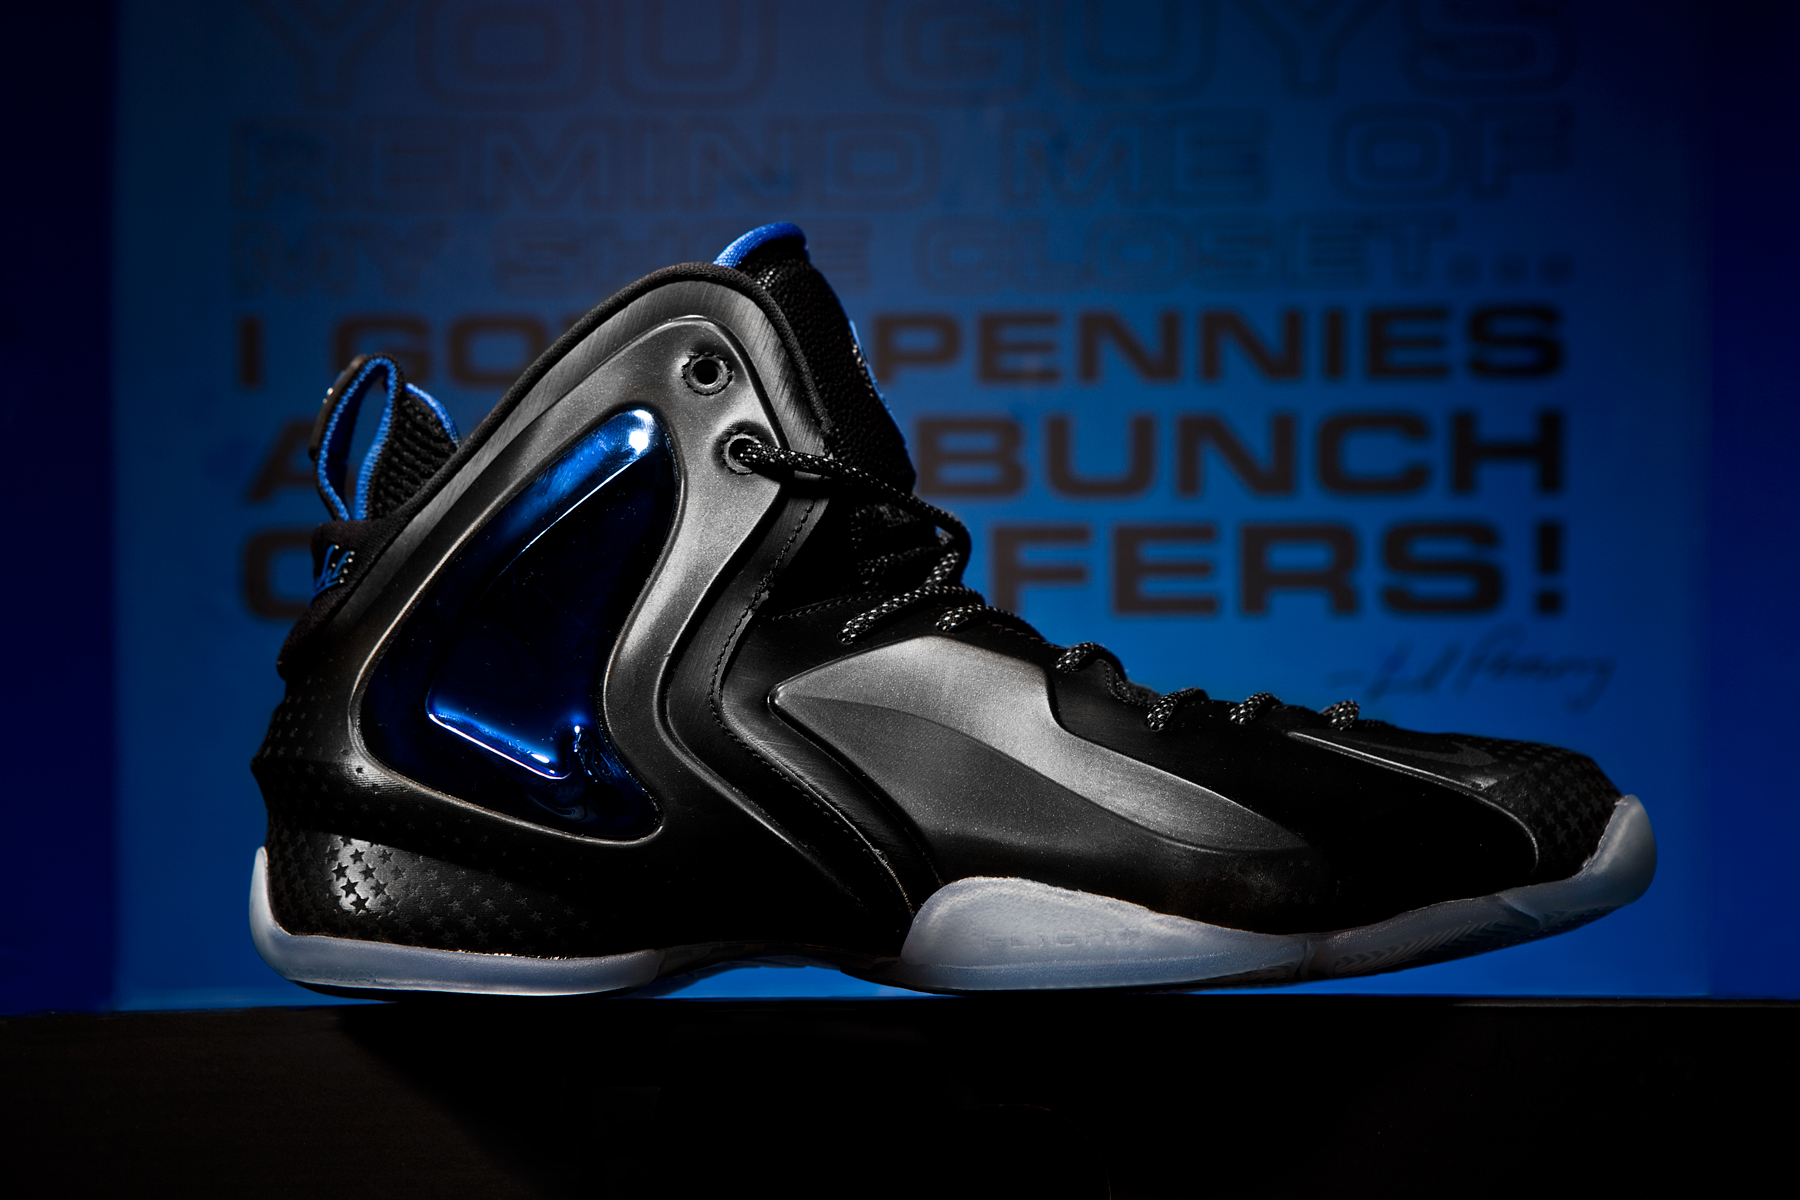 a closer look at the nike air foamposite one lil penny posite shooting stars pack